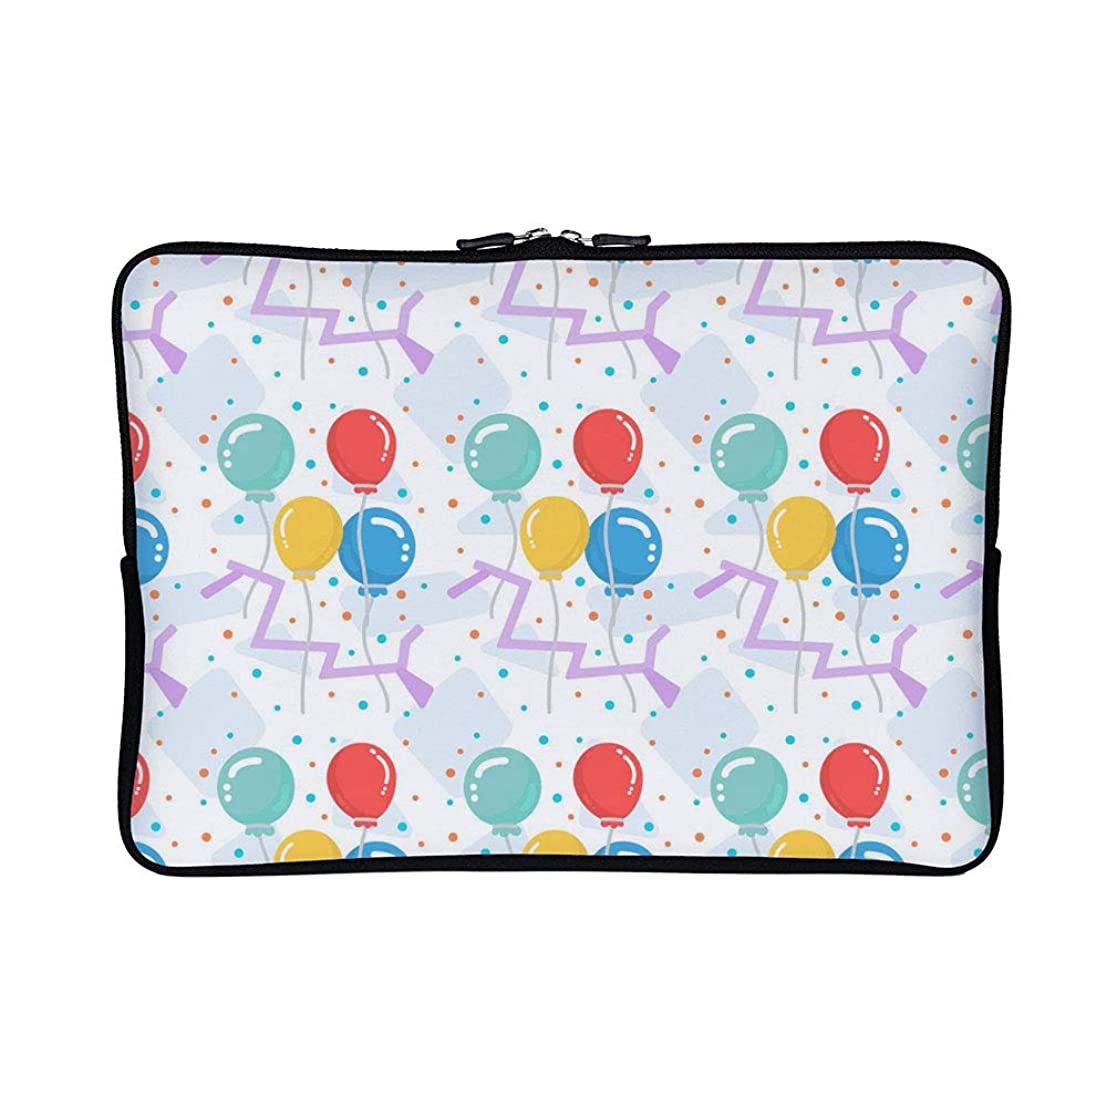 DKISEE Abstract Balloons Pattern Neoprene Laptop Sleeve Case Waterproof Sleeve Case Cover Bag 15 inch for MacBook/Notebook/Ultrabook/Chromebooks